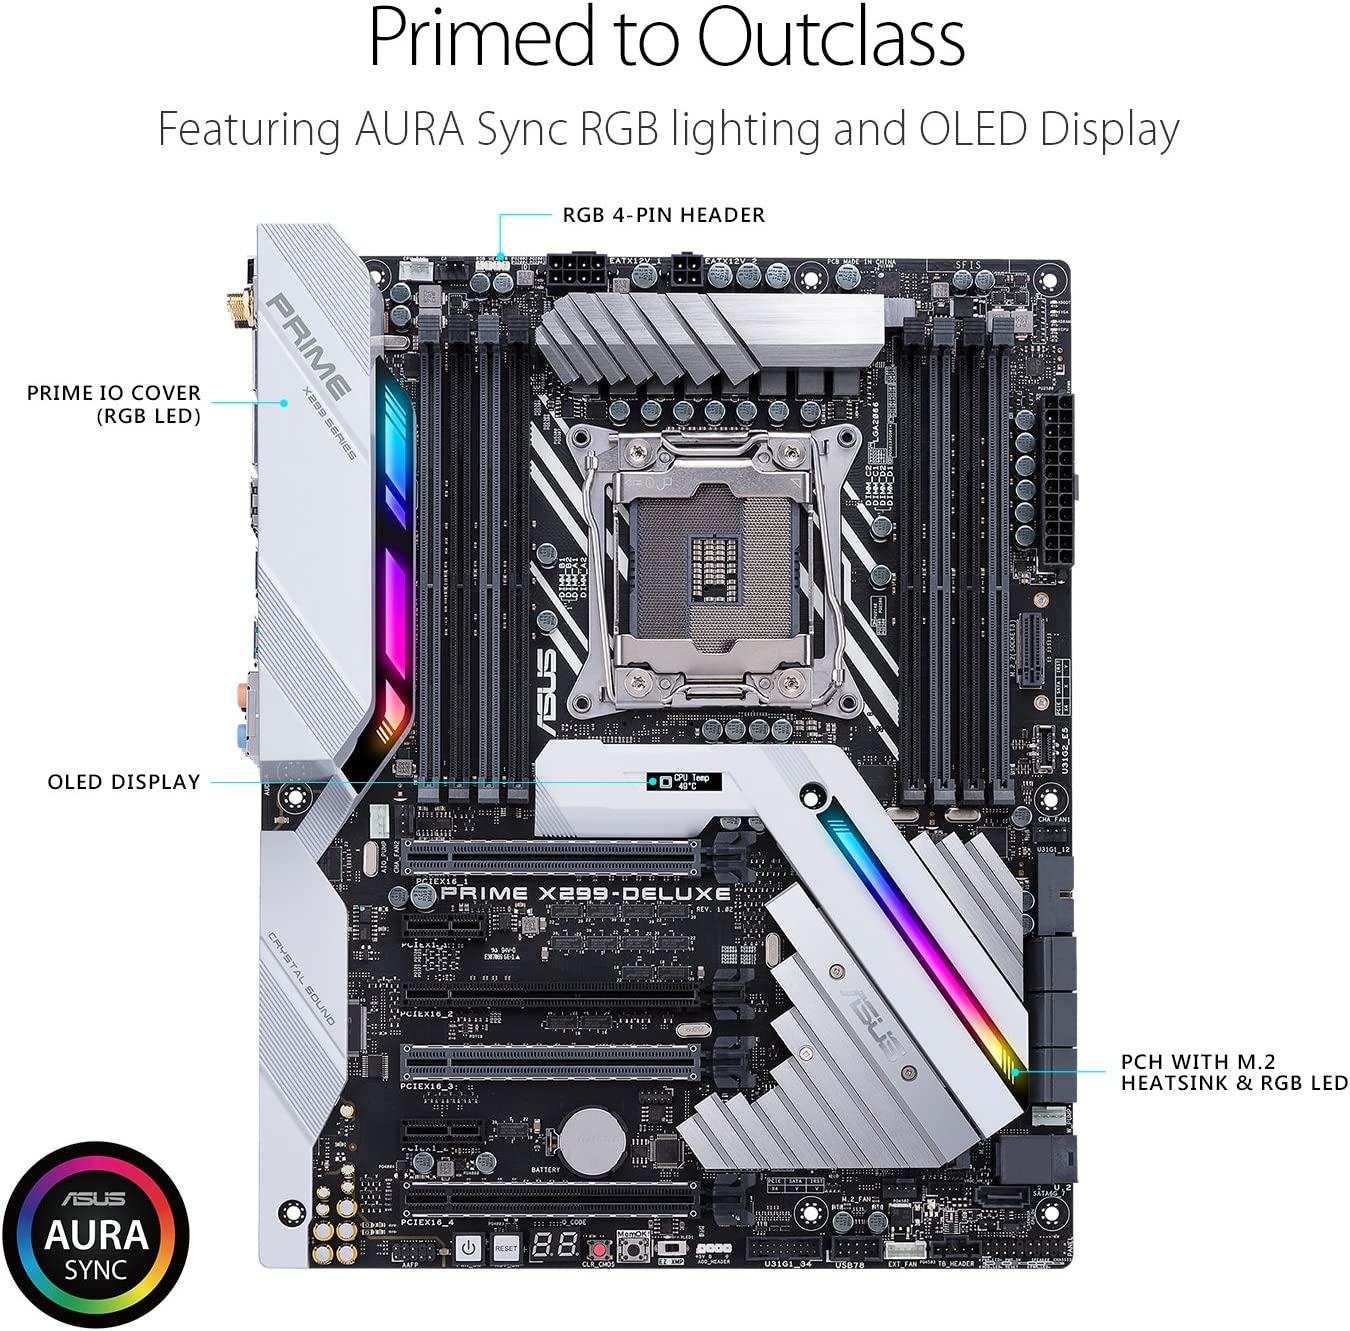 ASUS Prime X299-DELUXE LGA2066 DDR4 M.2 U.2 Thunderbolt 3 USB 3.1 X299 ATX Motherboard with Dual Gigabit LAN and 802.11AD WiFi for Intel Core X-Series ...